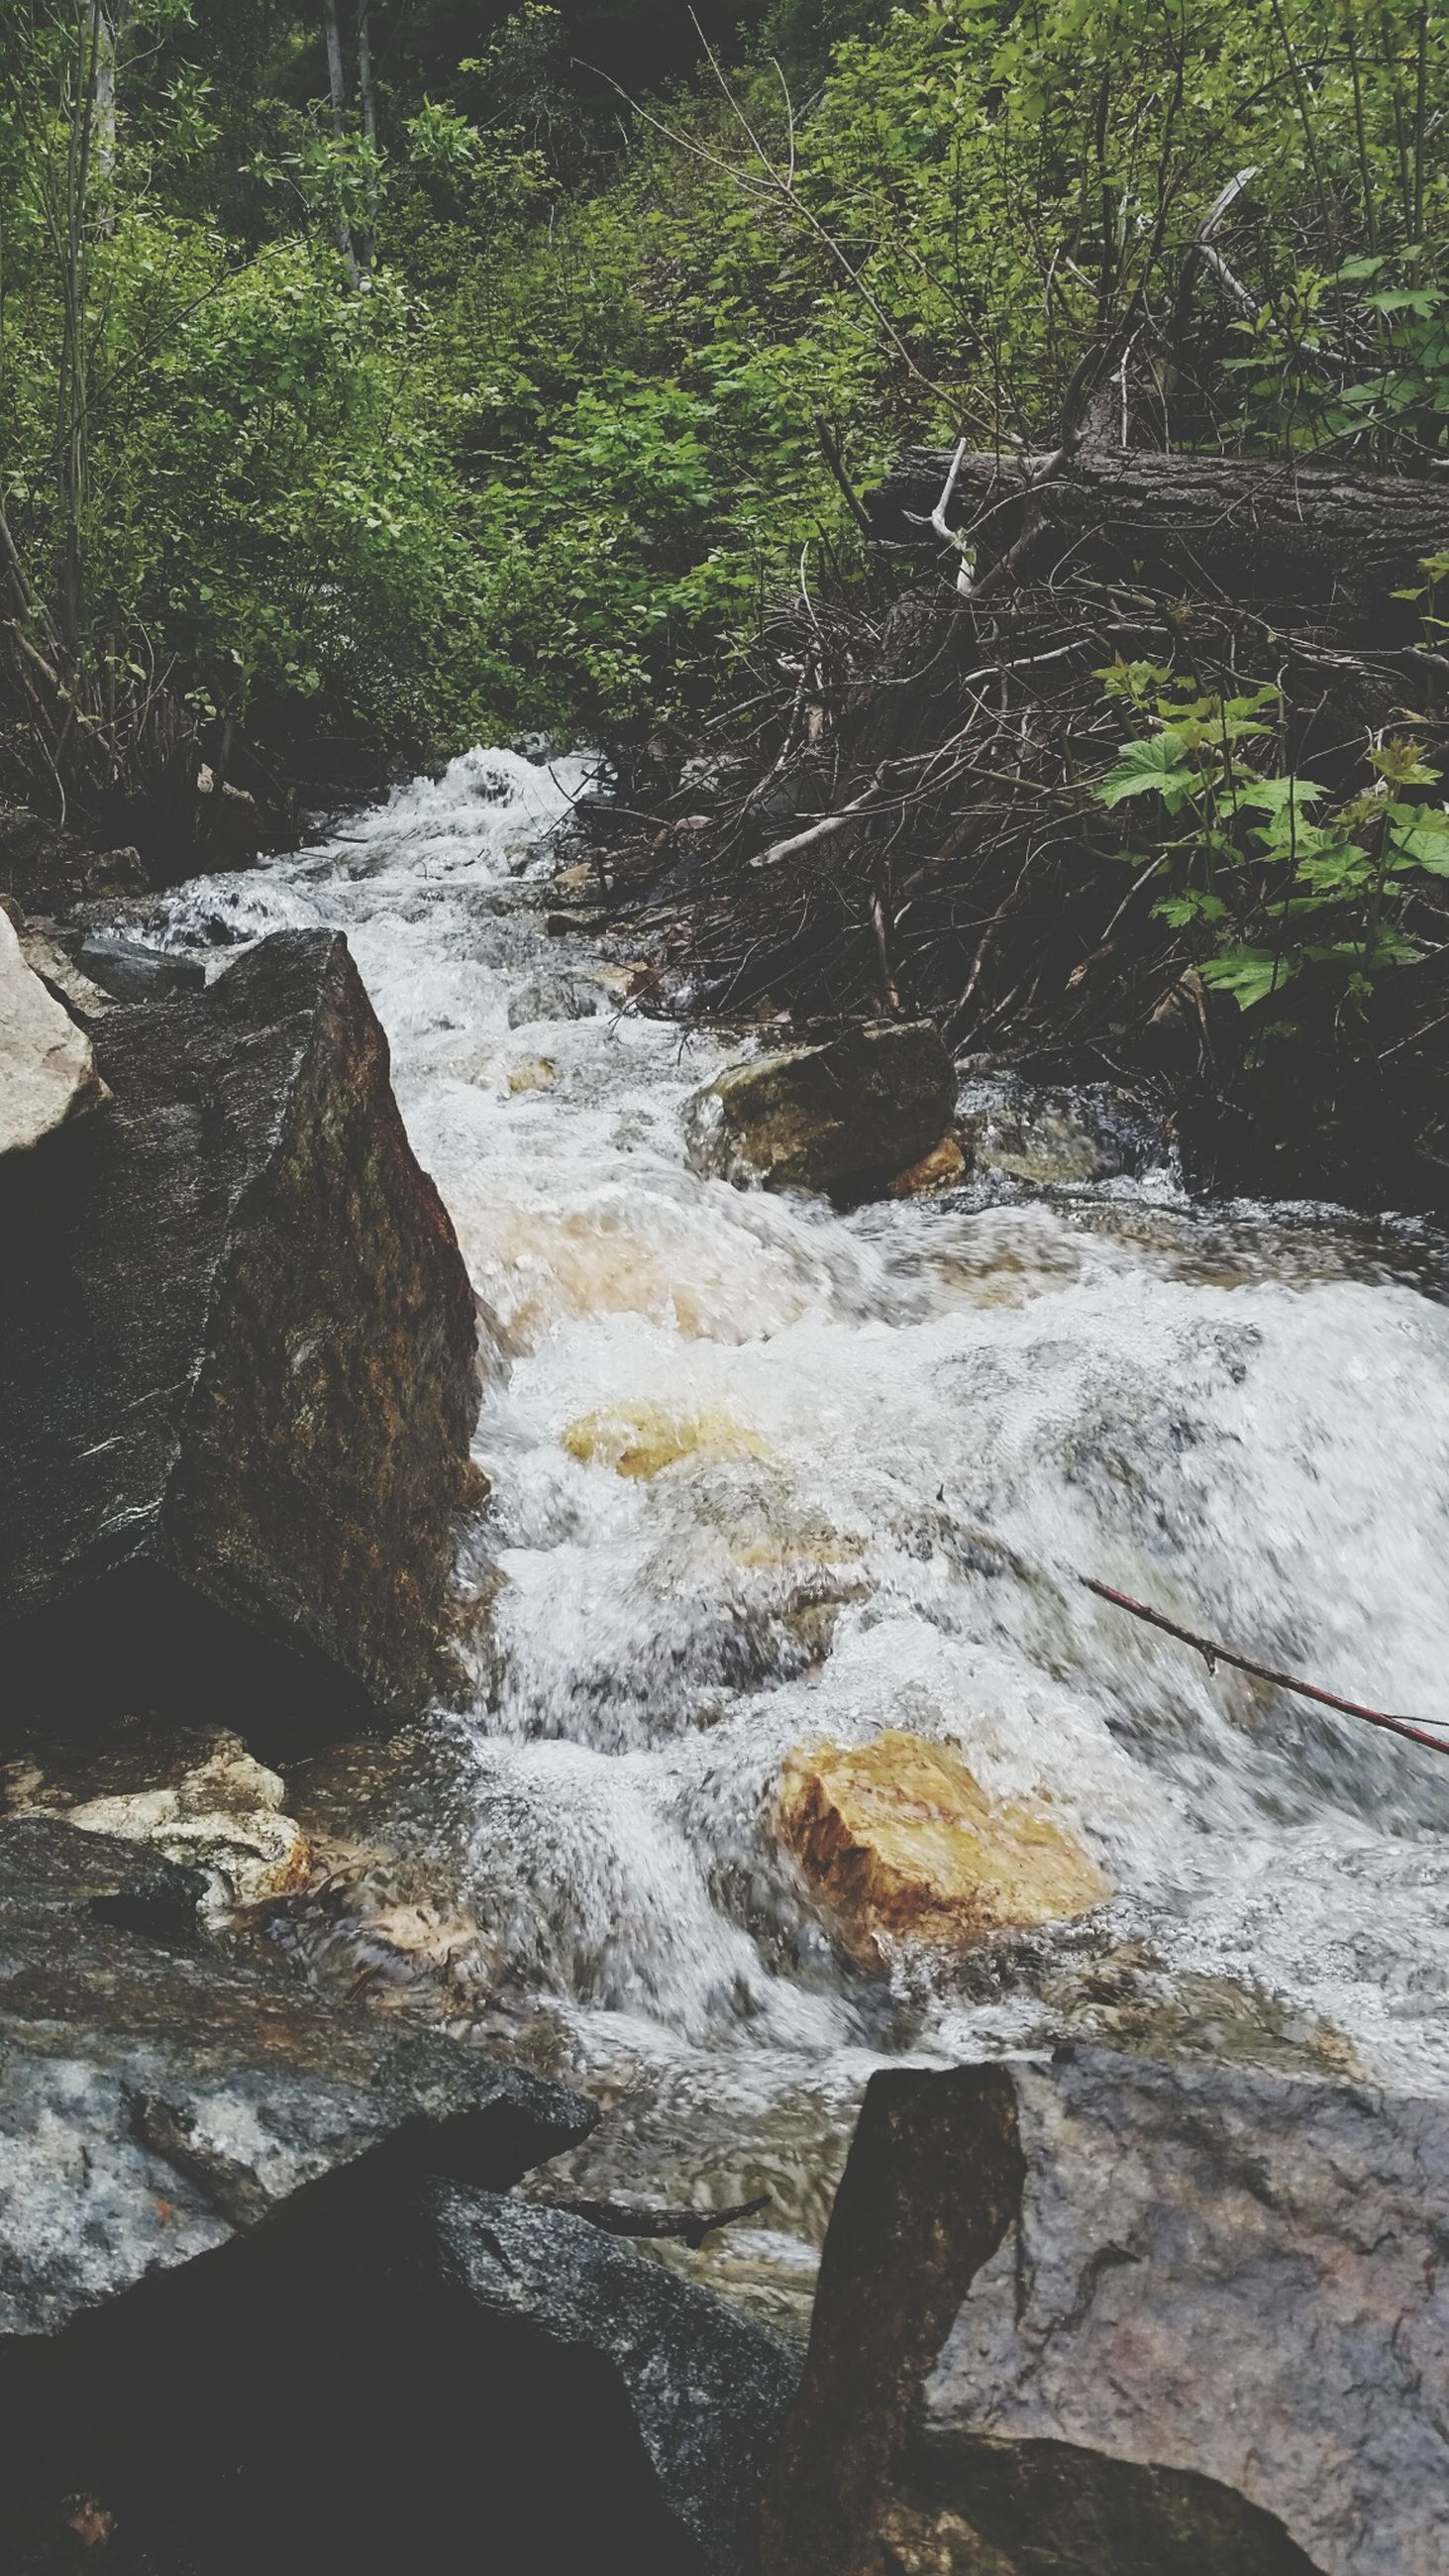 water, rock - object, flowing water, stream, nature, motion, flowing, high angle view, river, waterfall, beauty in nature, forest, day, outdoors, tranquility, sunlight, plant, no people, scenics, rock